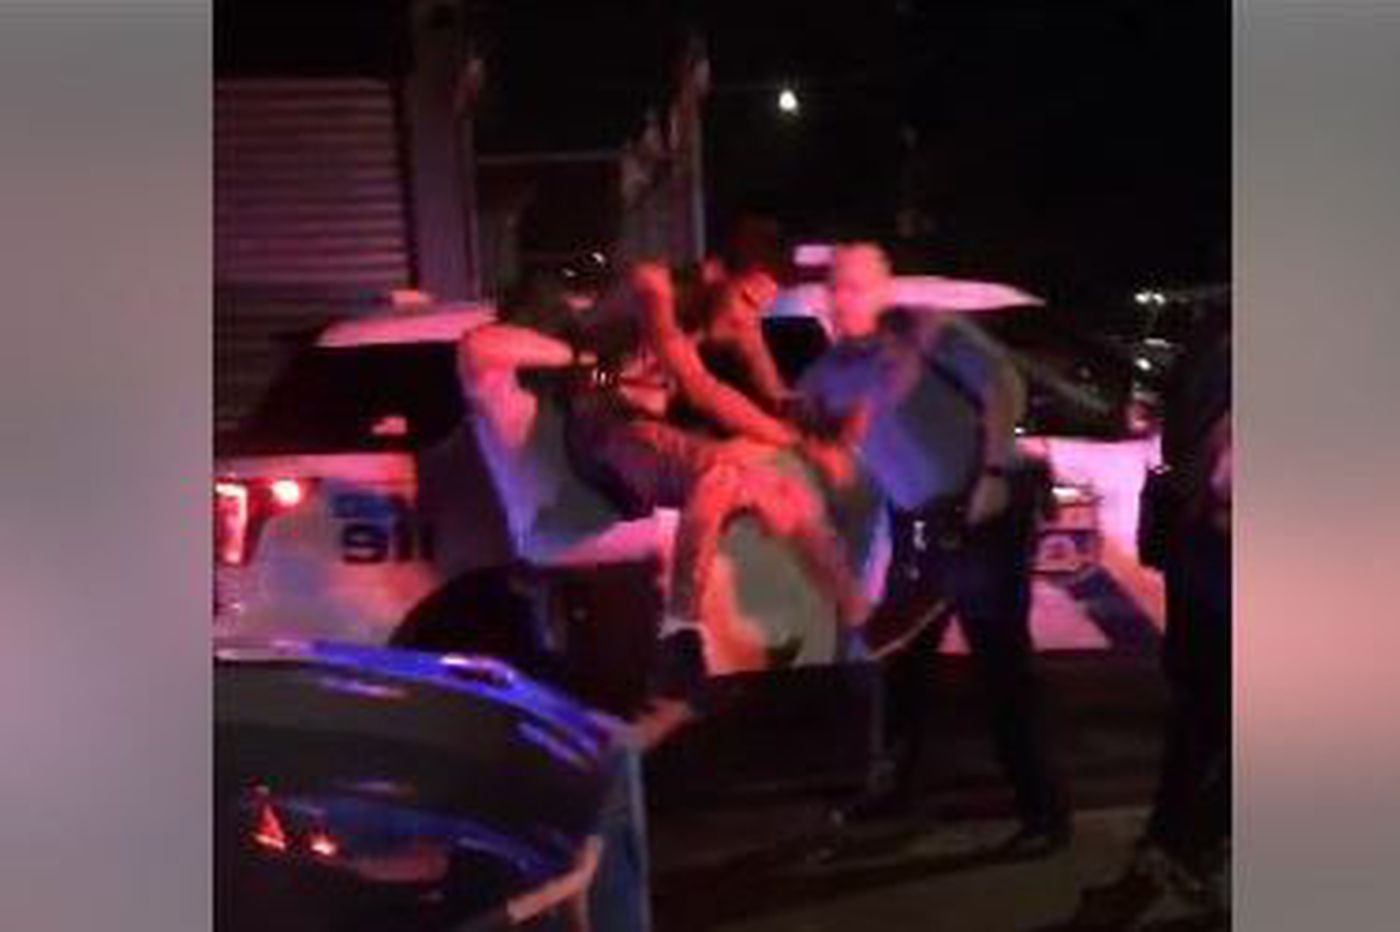 Cops probe chaotic Kensington arrest caught on viral video